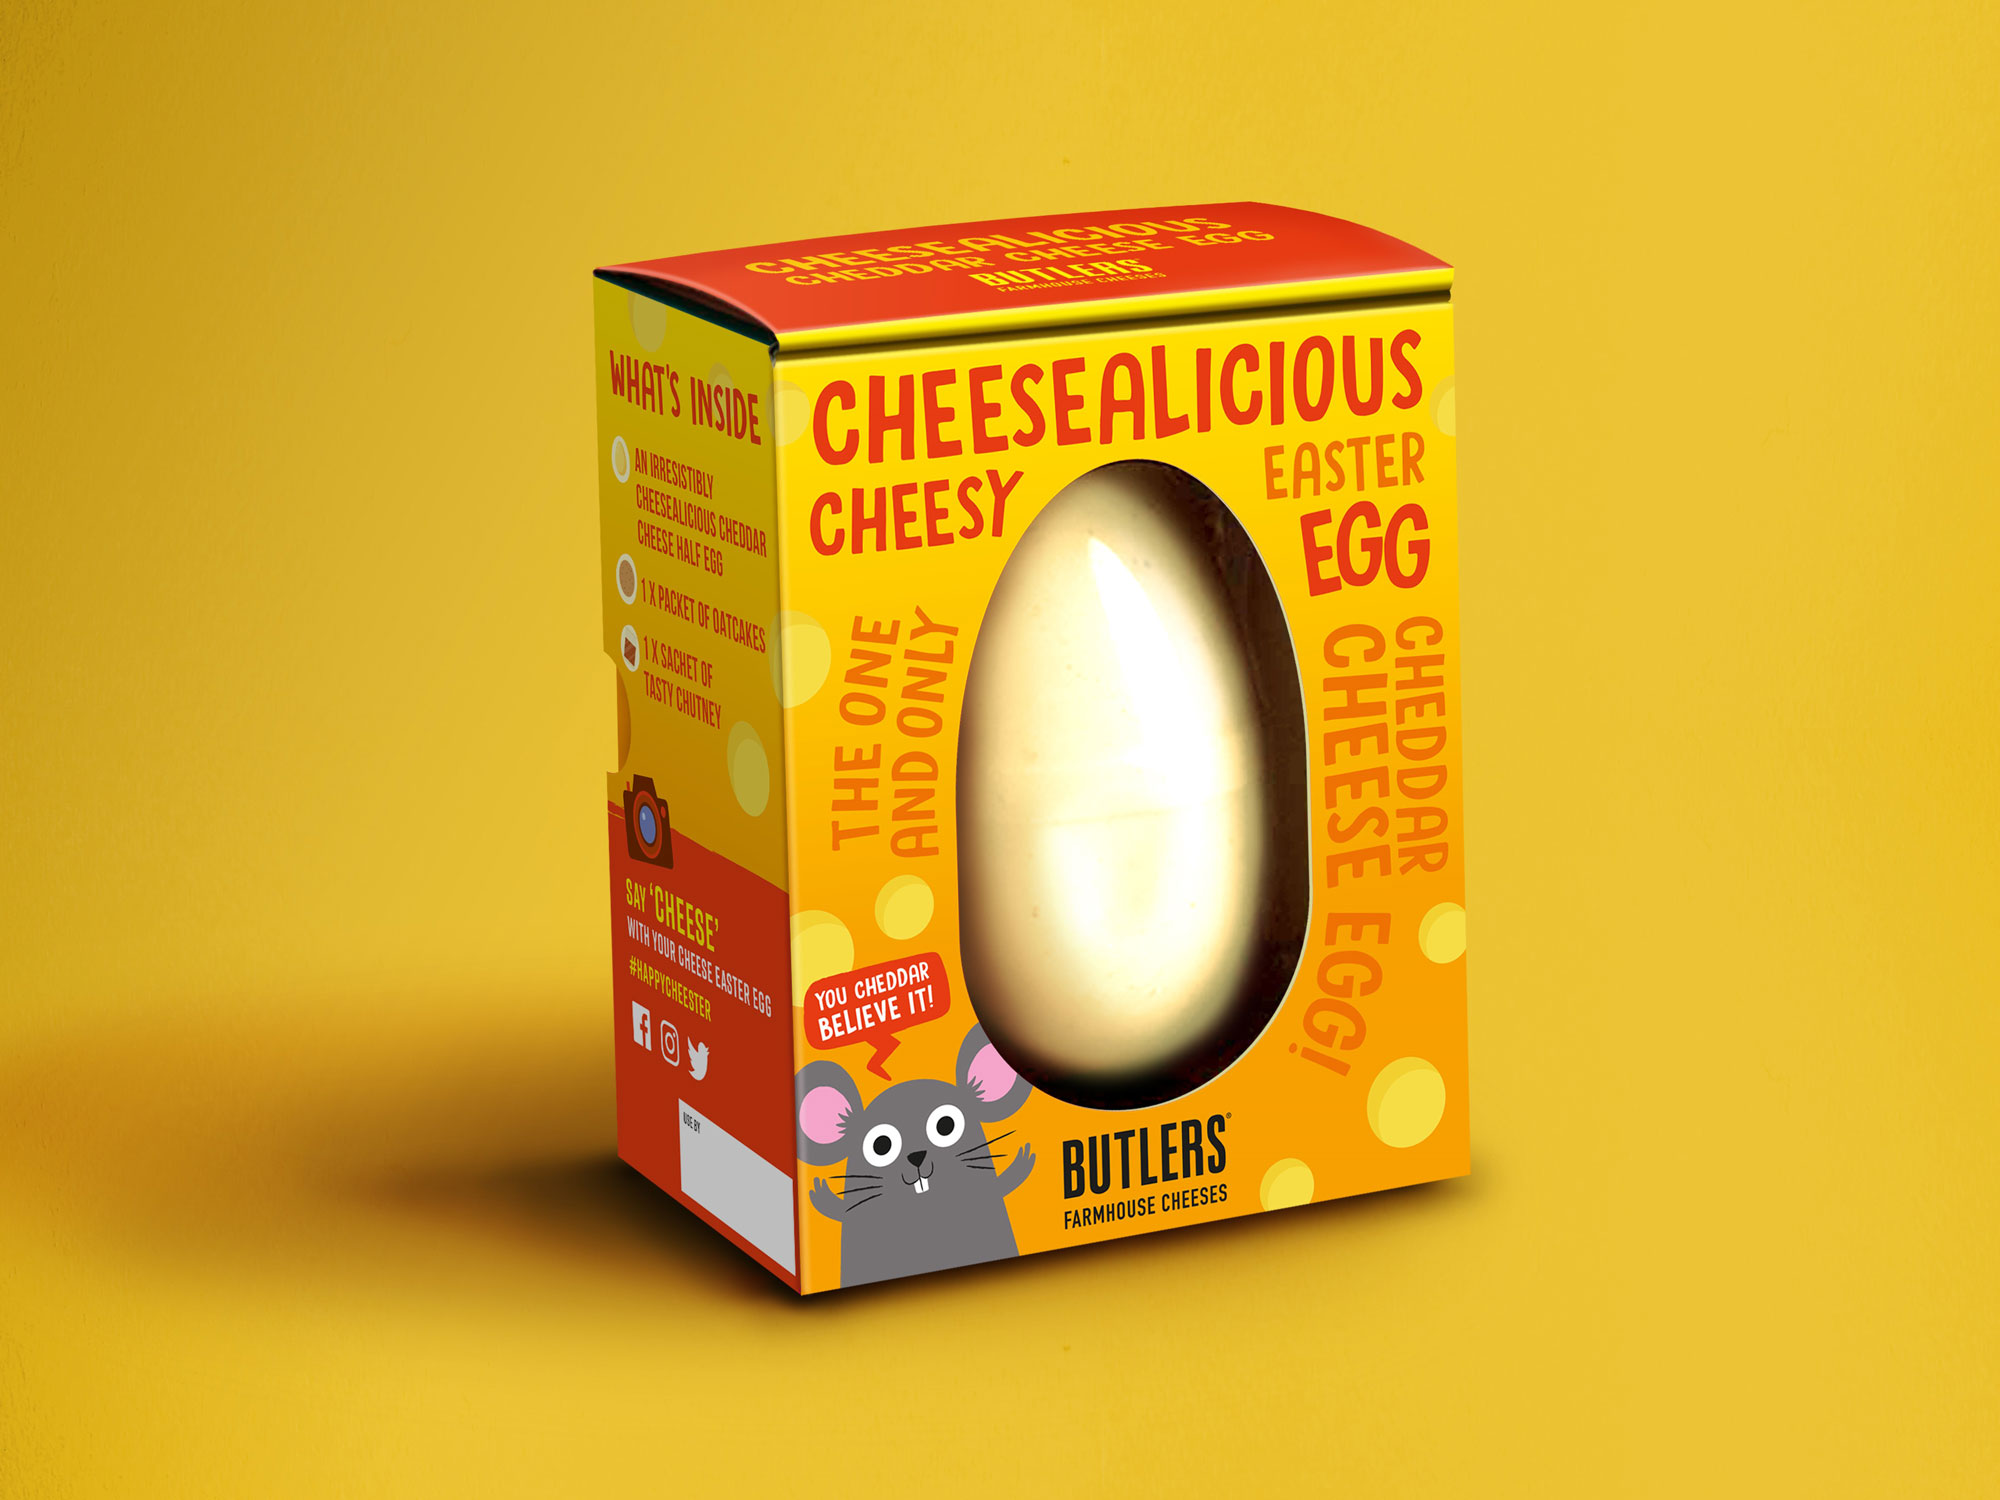 Sainsbury's Cheese Easter Egg